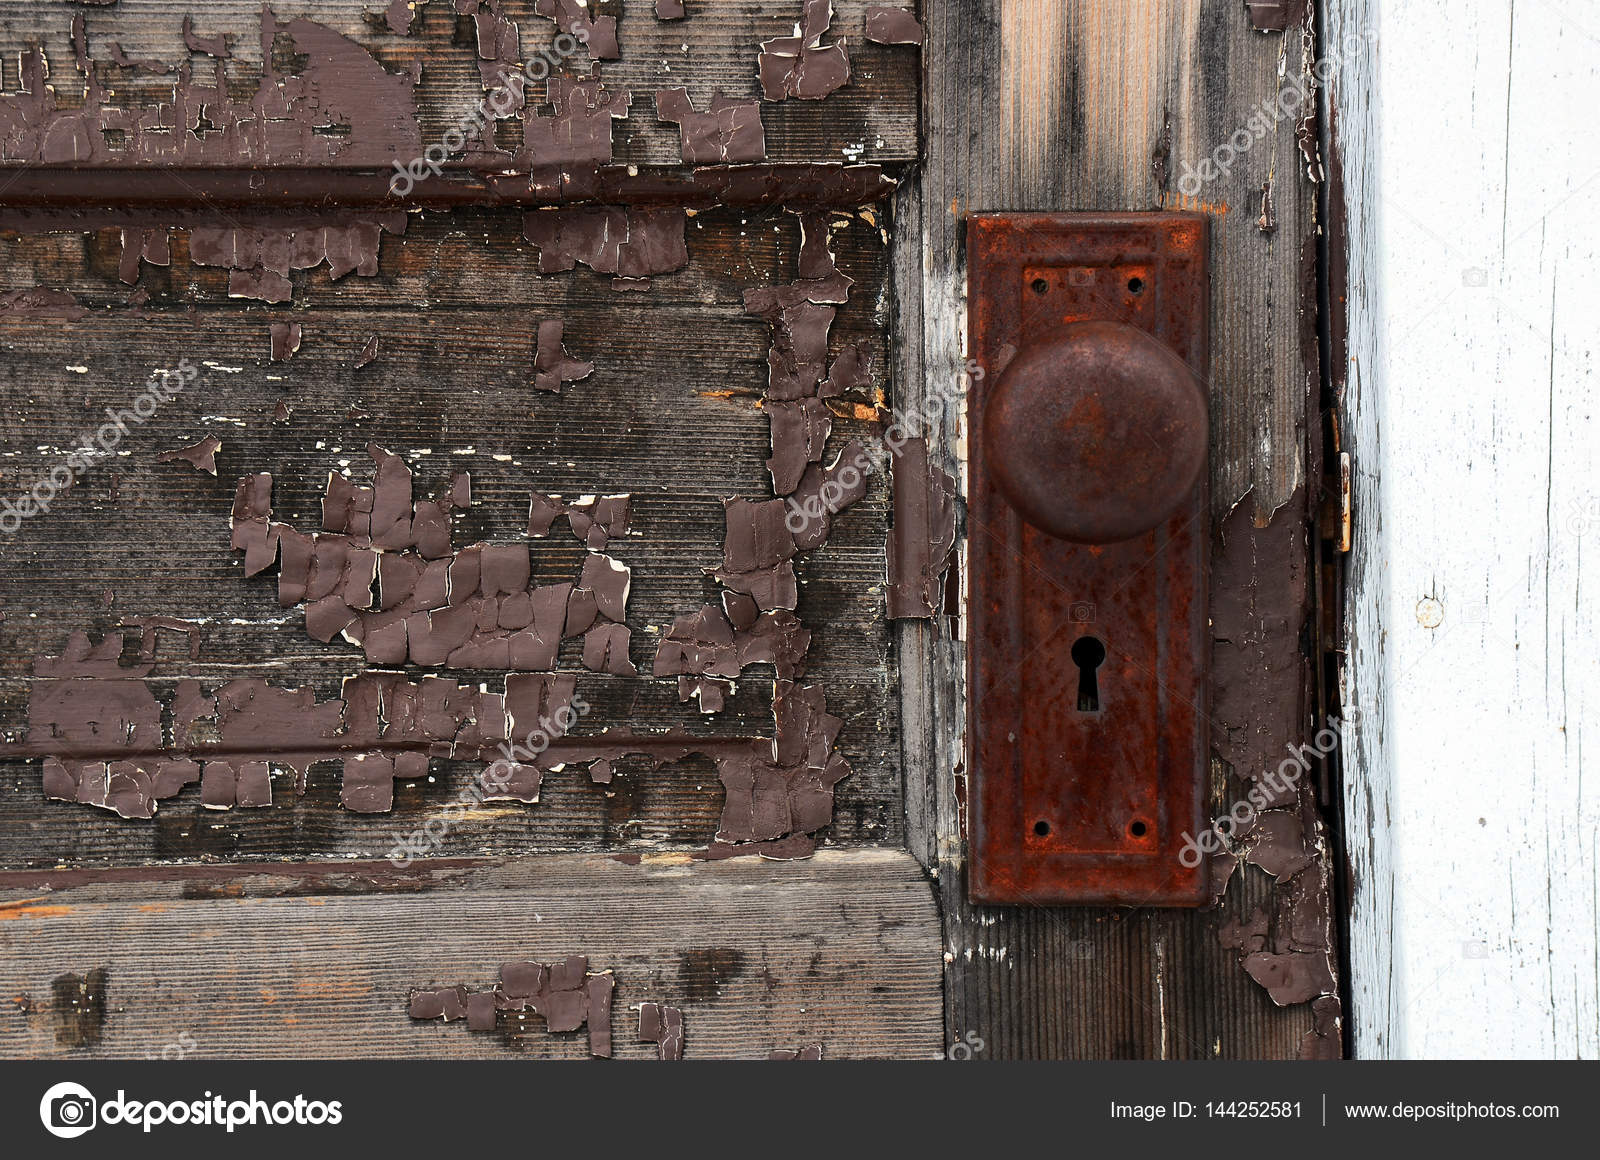 A Close Up Image Of An Old Rusted Antique Door Handle.